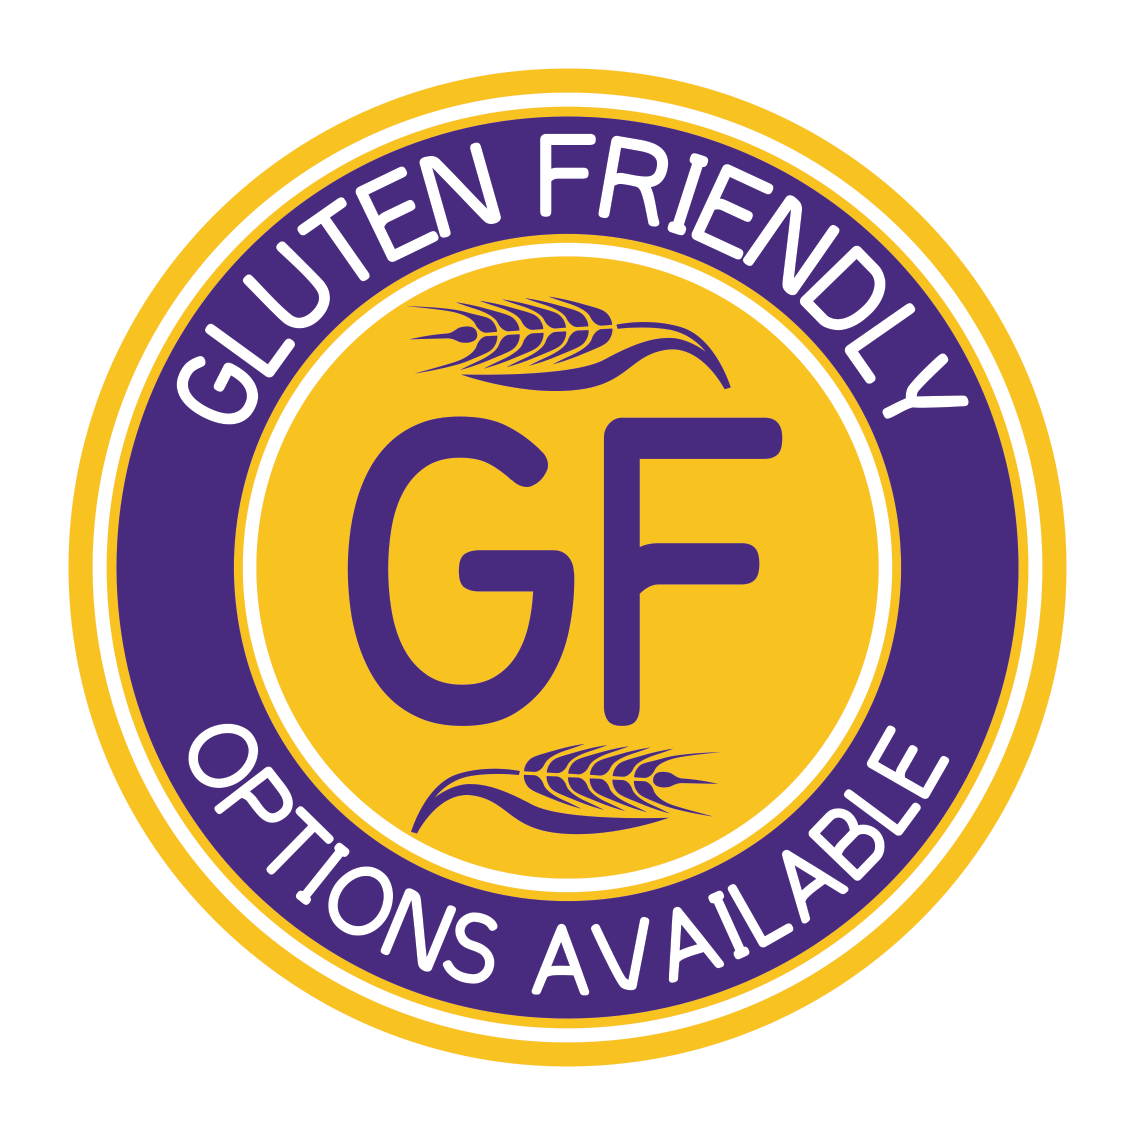 Gluten friendly options available